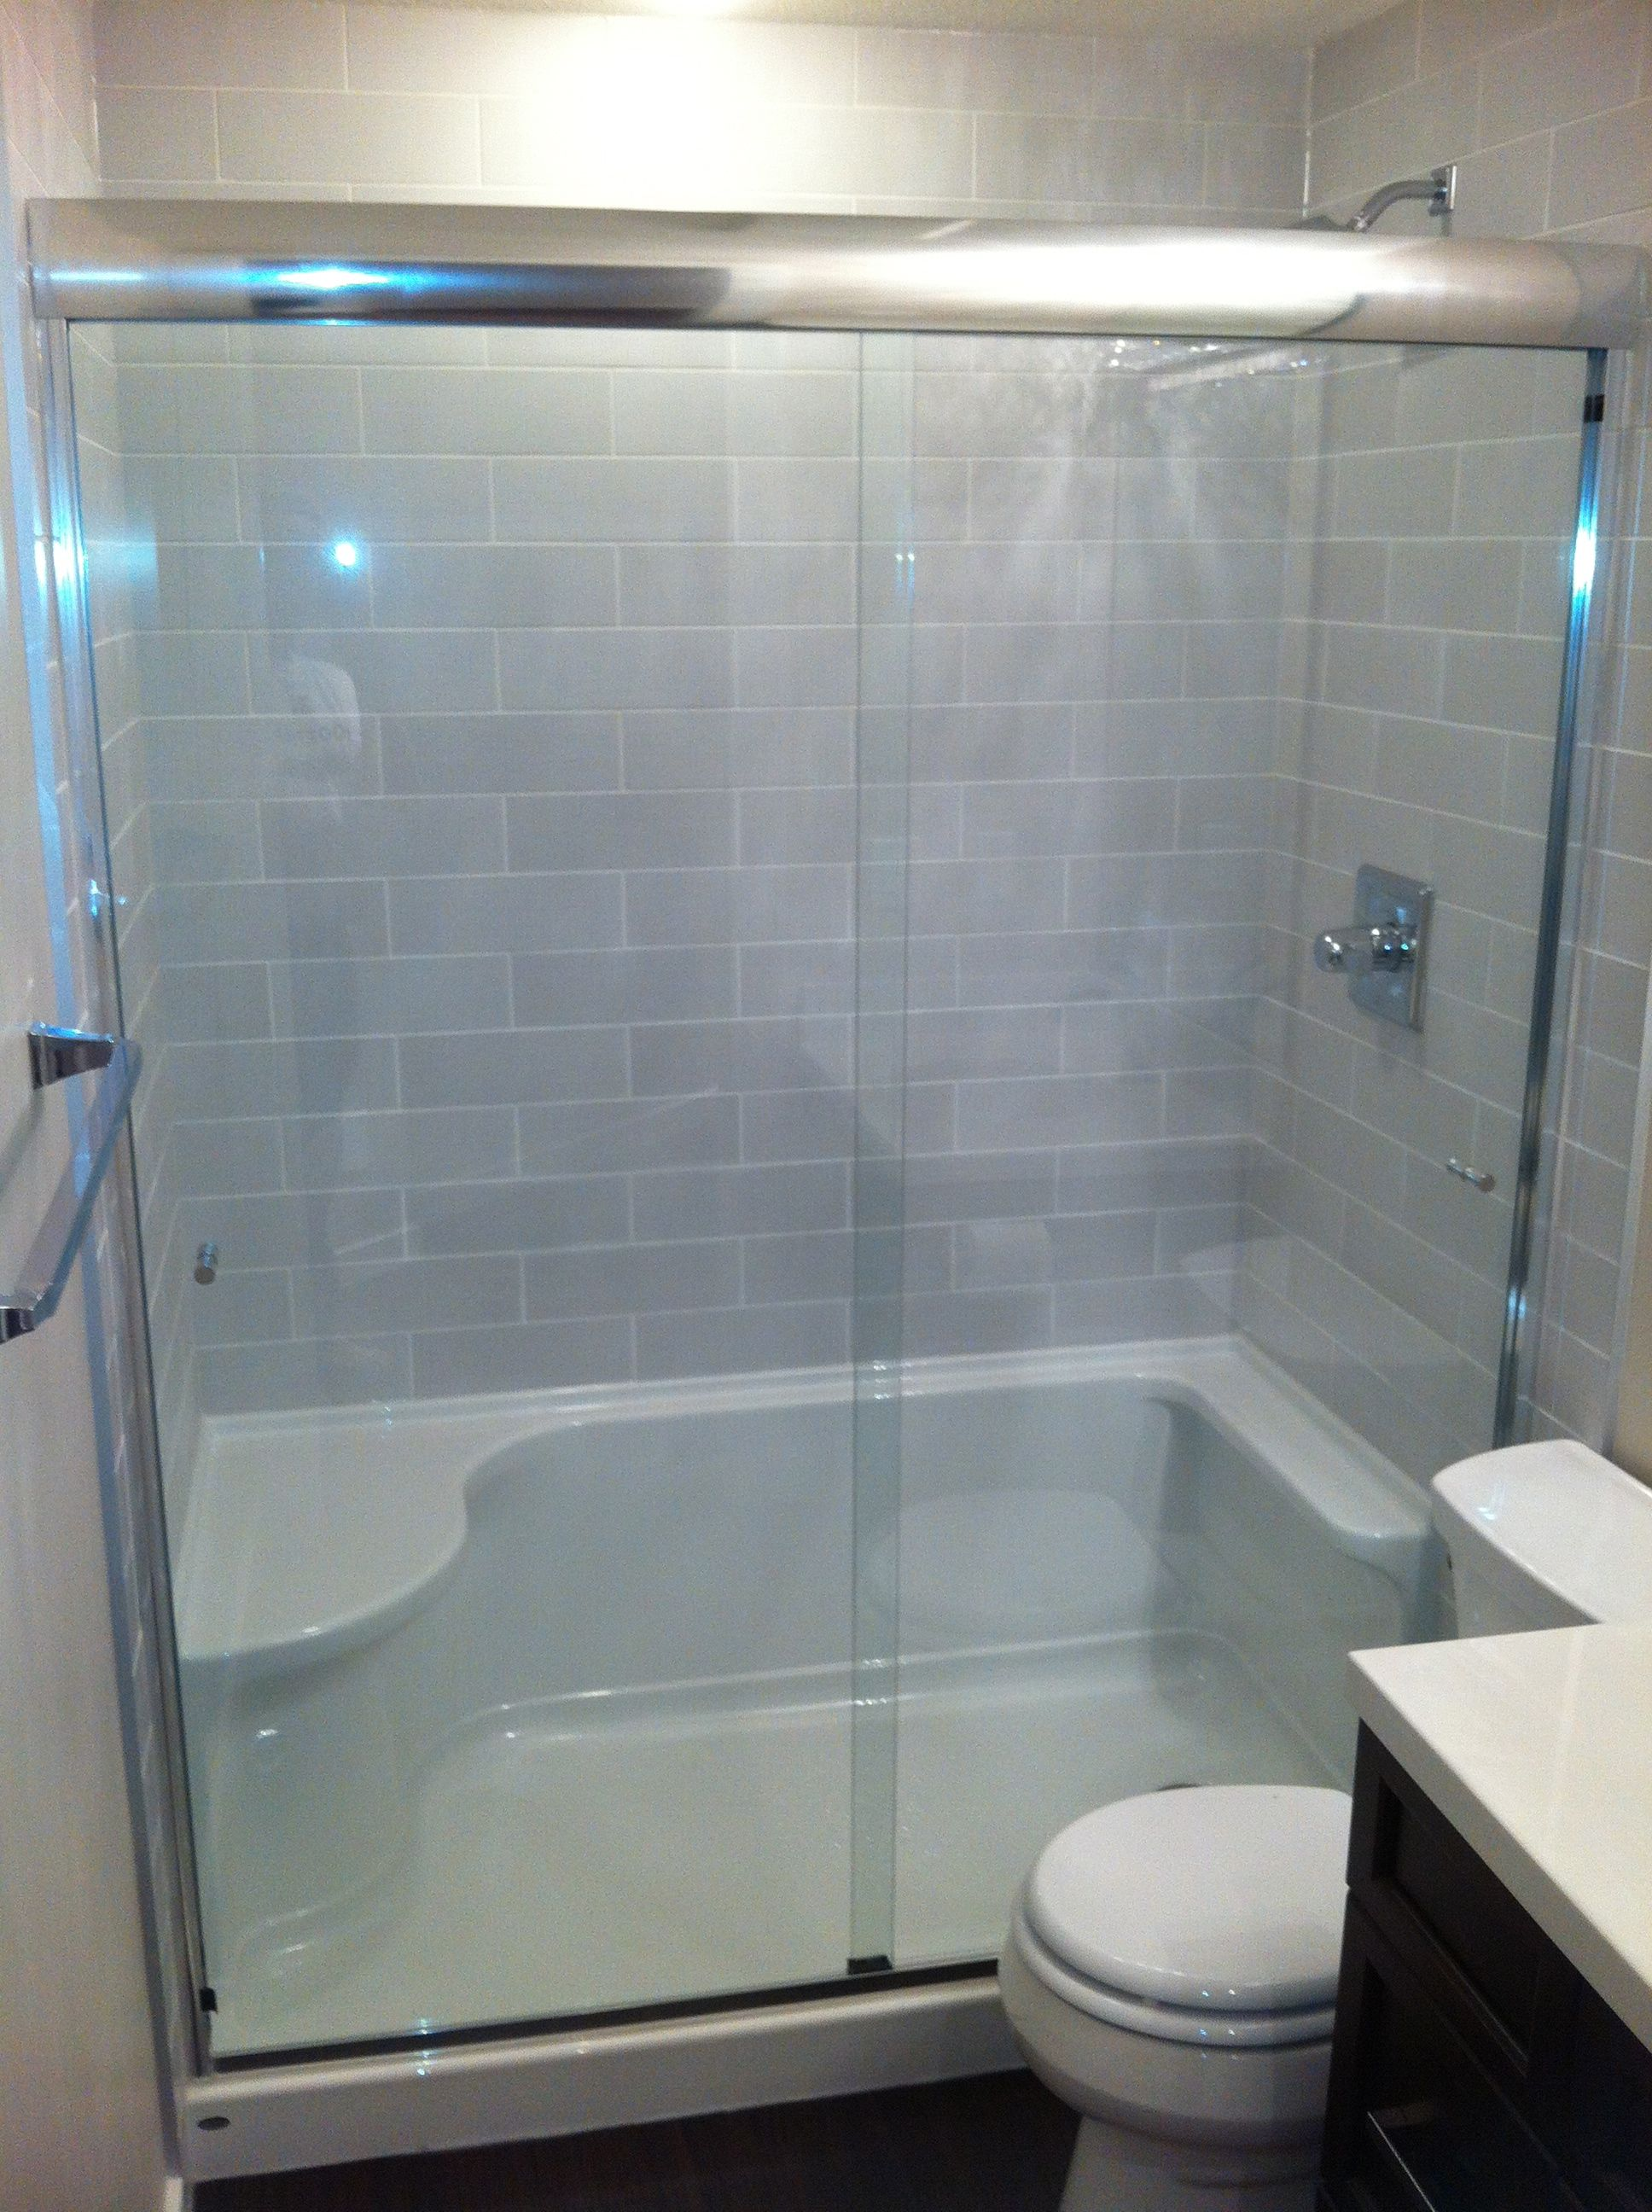 Tile shower & tub to shower conversion - bathroom renovation ...